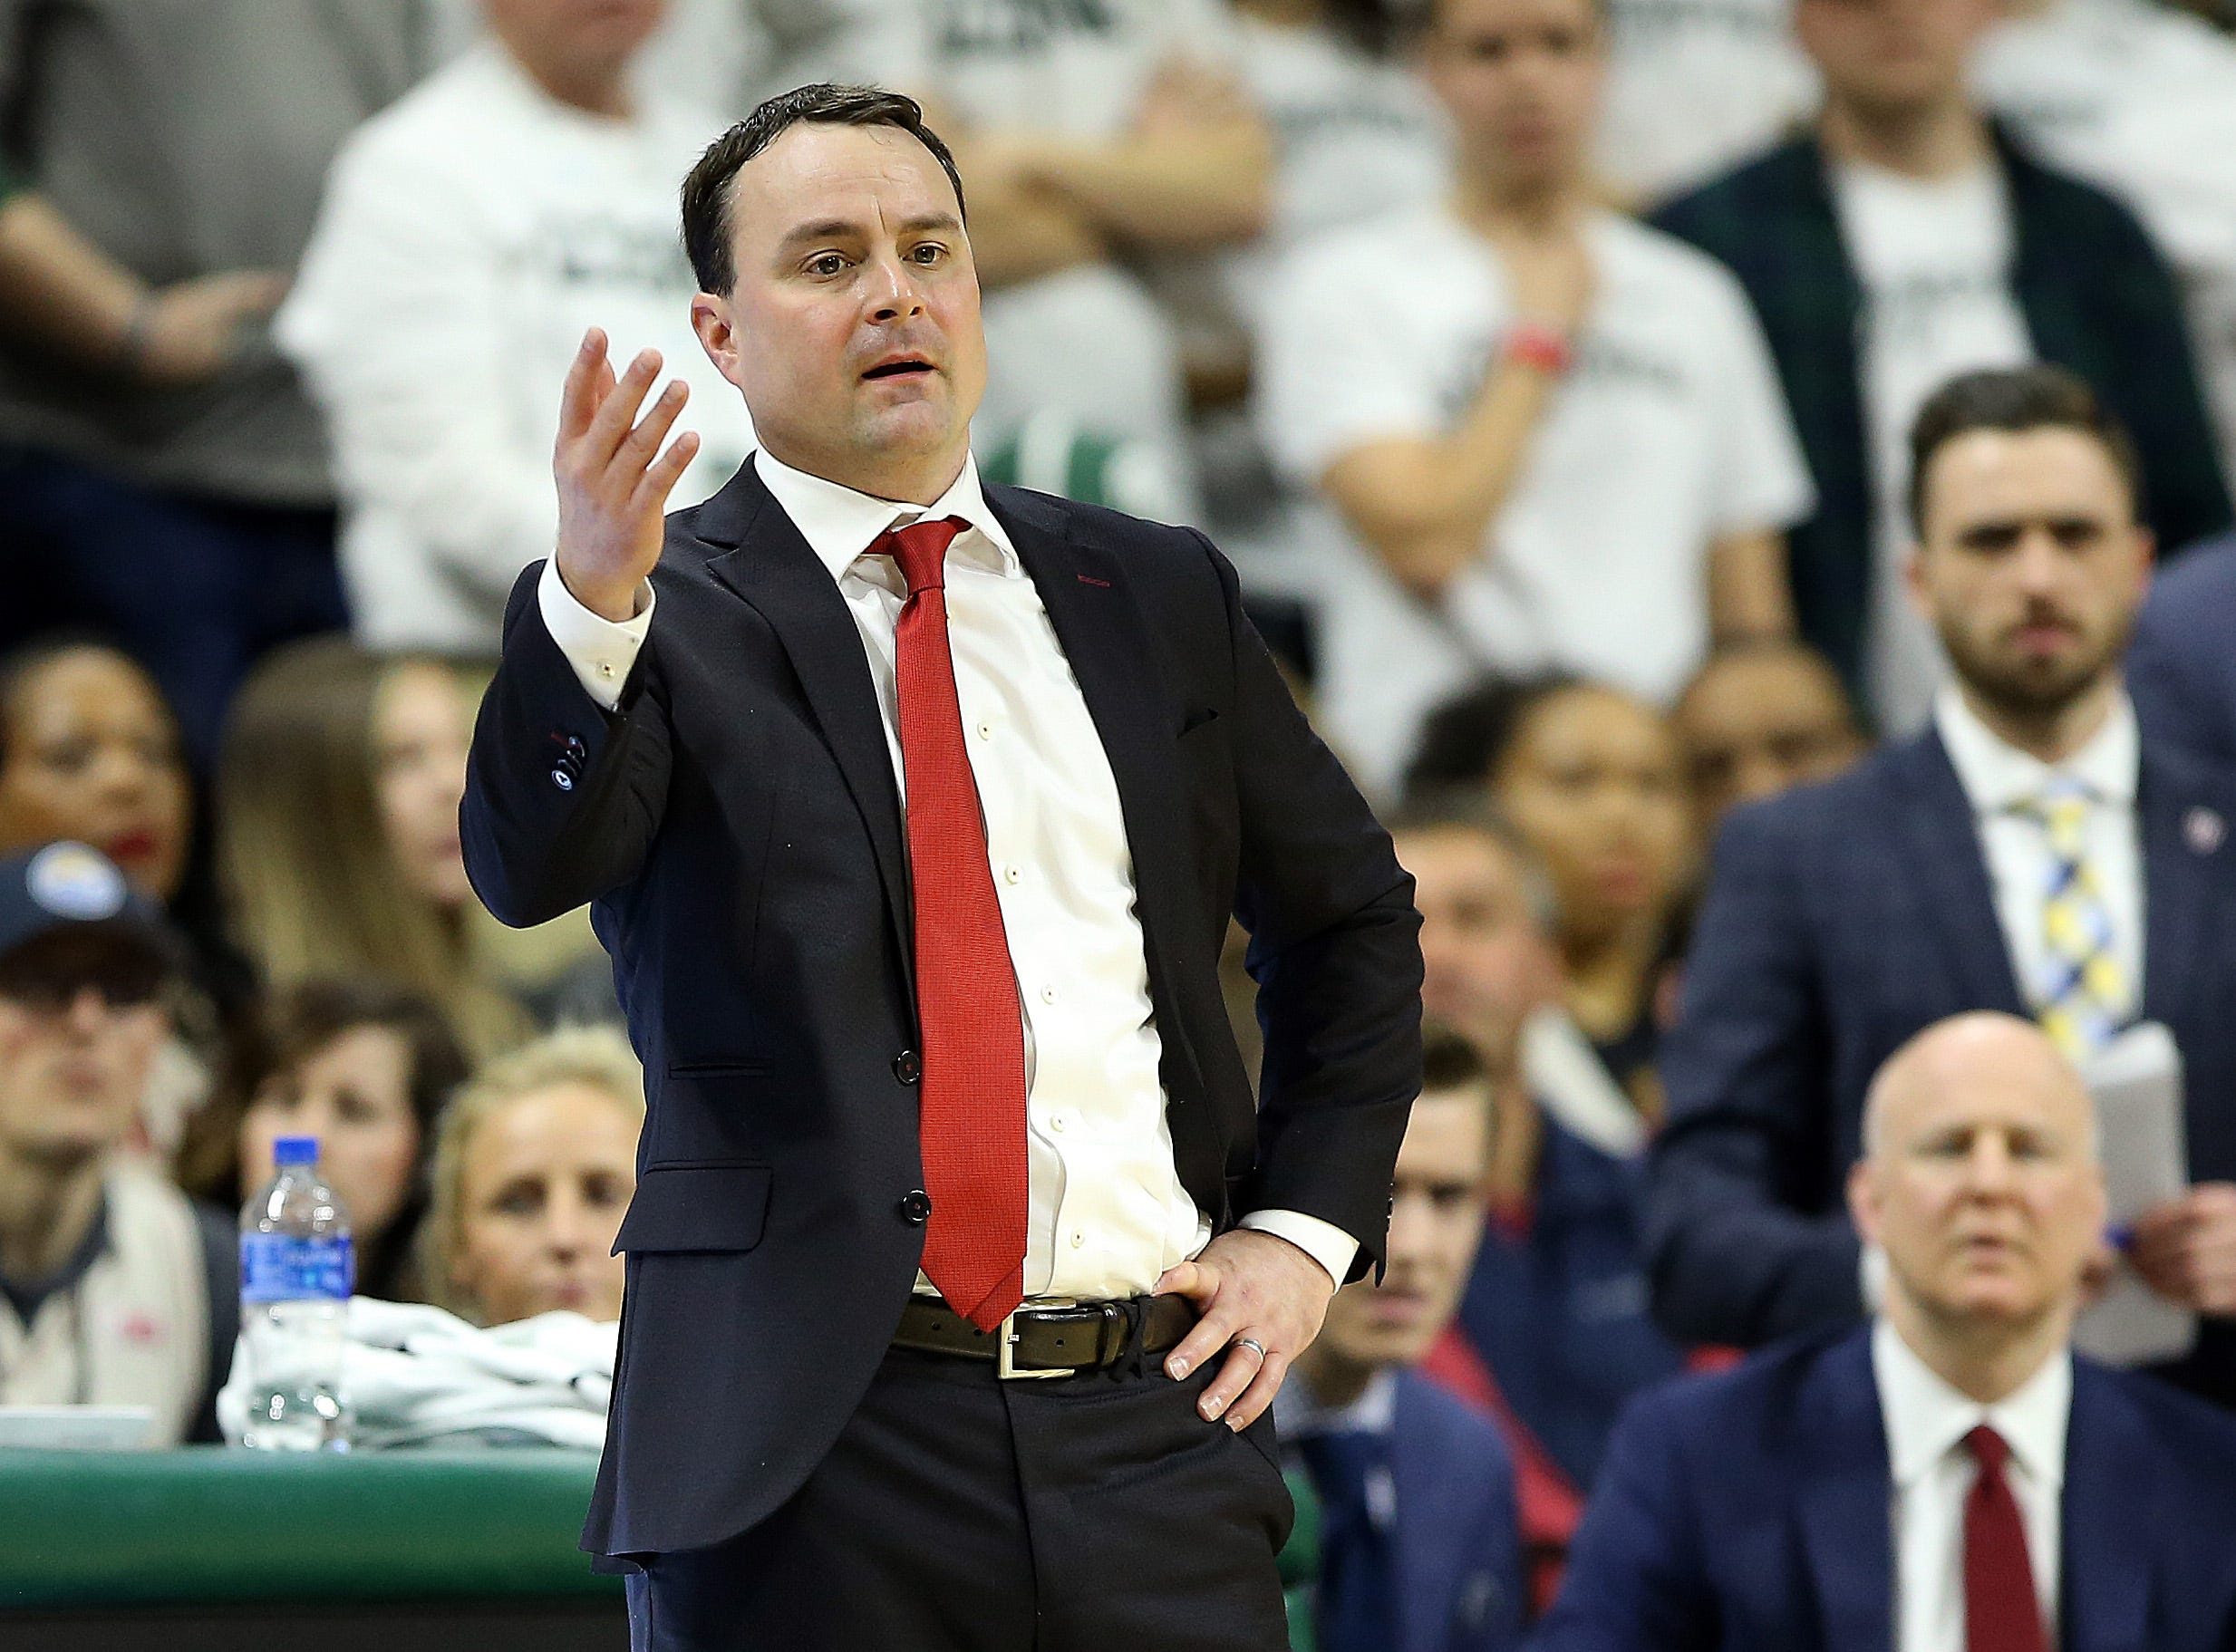 Feb 2, 2019; East Lansing, MI, USA; Indiana Hoosiers head coach Archie Miller gestures during the first half  against the Michigan State Spartans at the Breslin Center. Mandatory Credit: Mike Carter-USA TODAY Sports